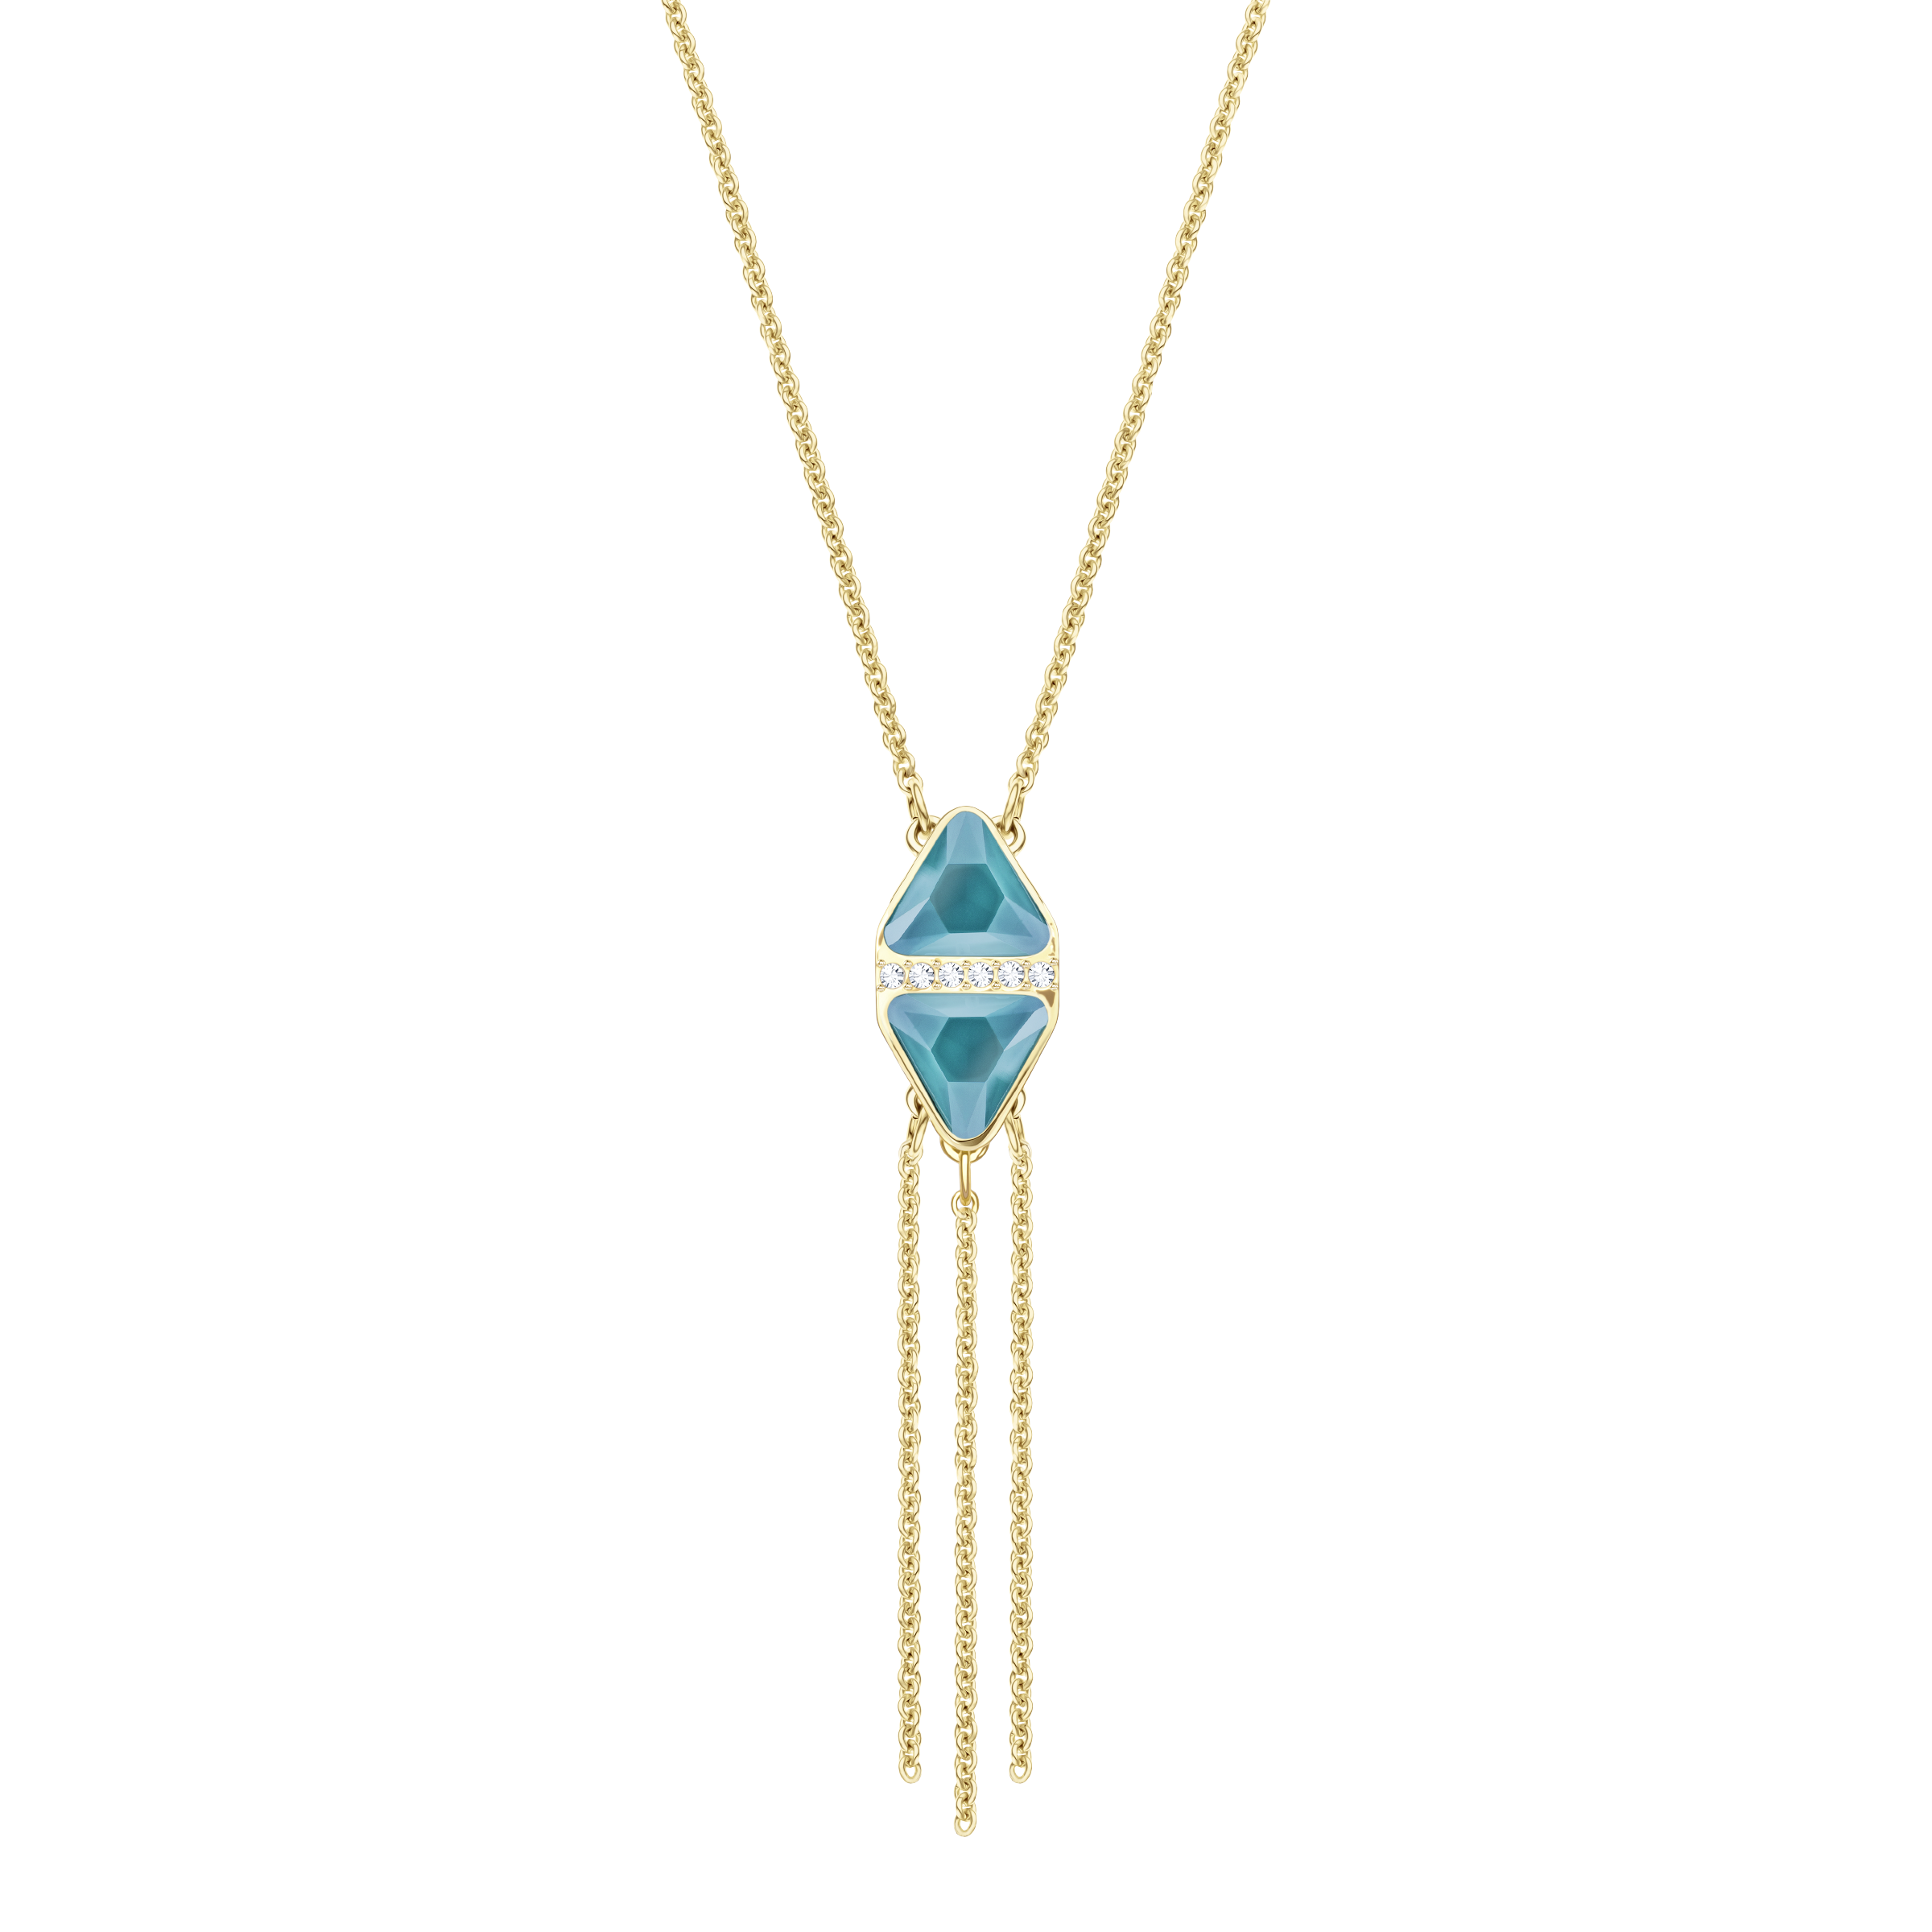 Labyrinth Necklace, Multi-Colored, Gold Plating